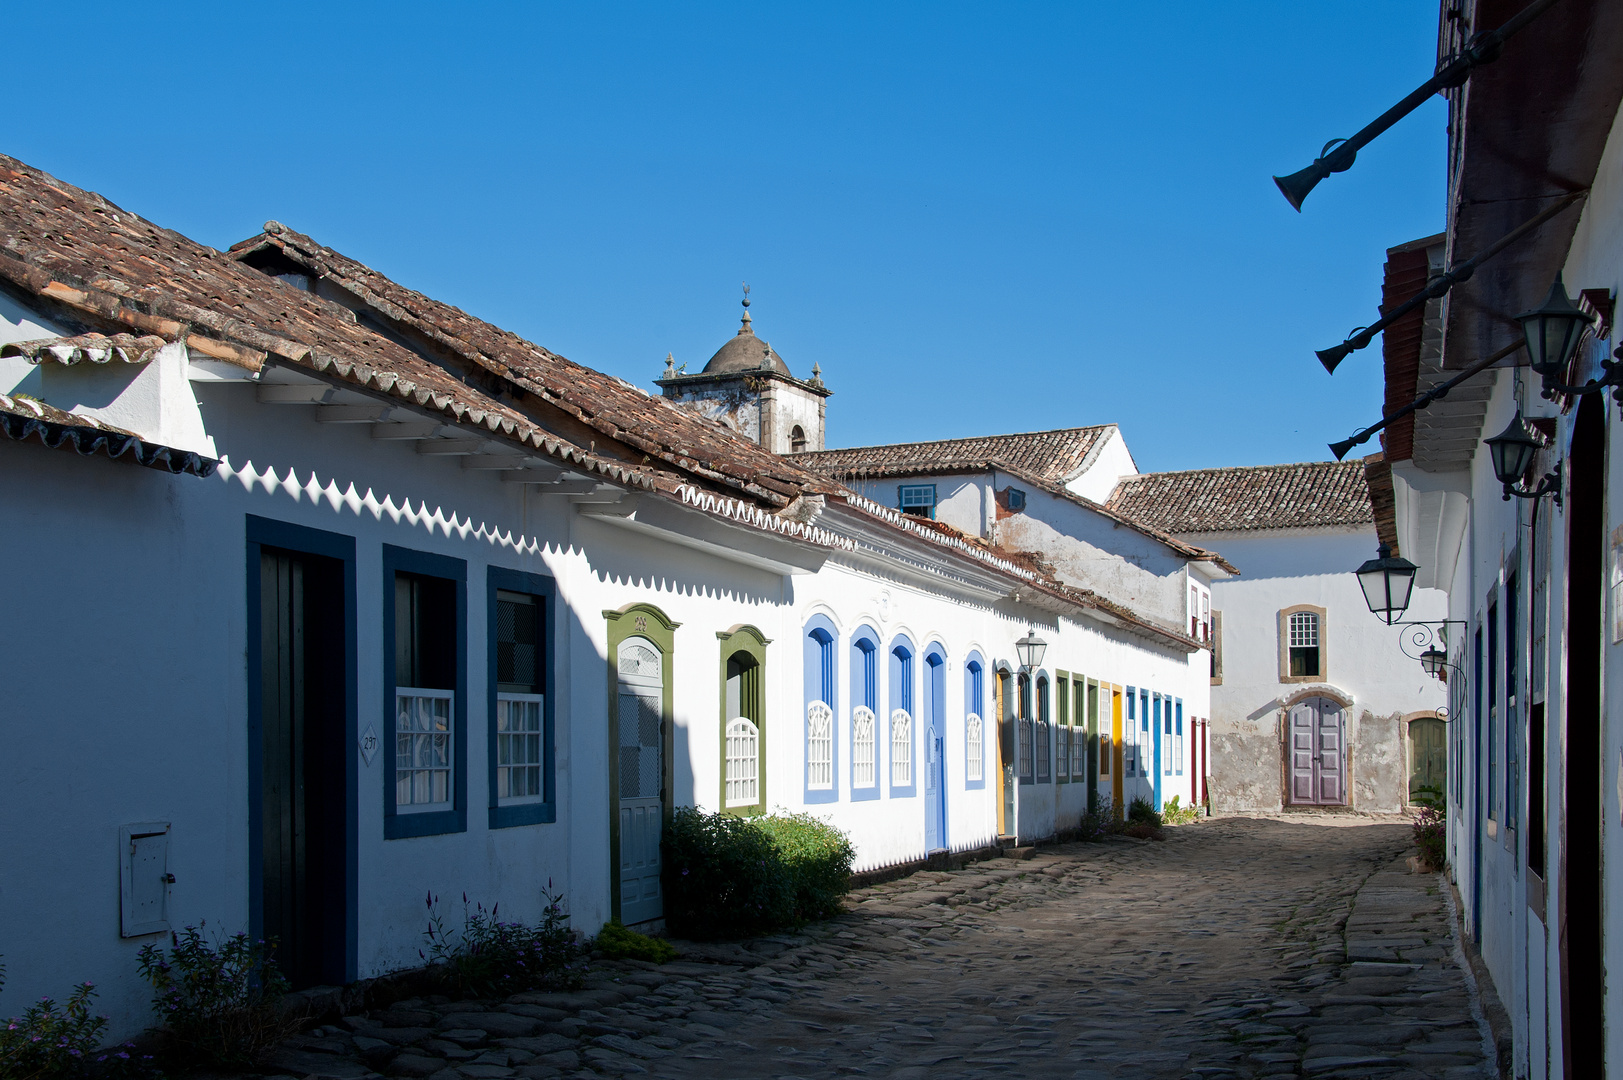 In Paraty